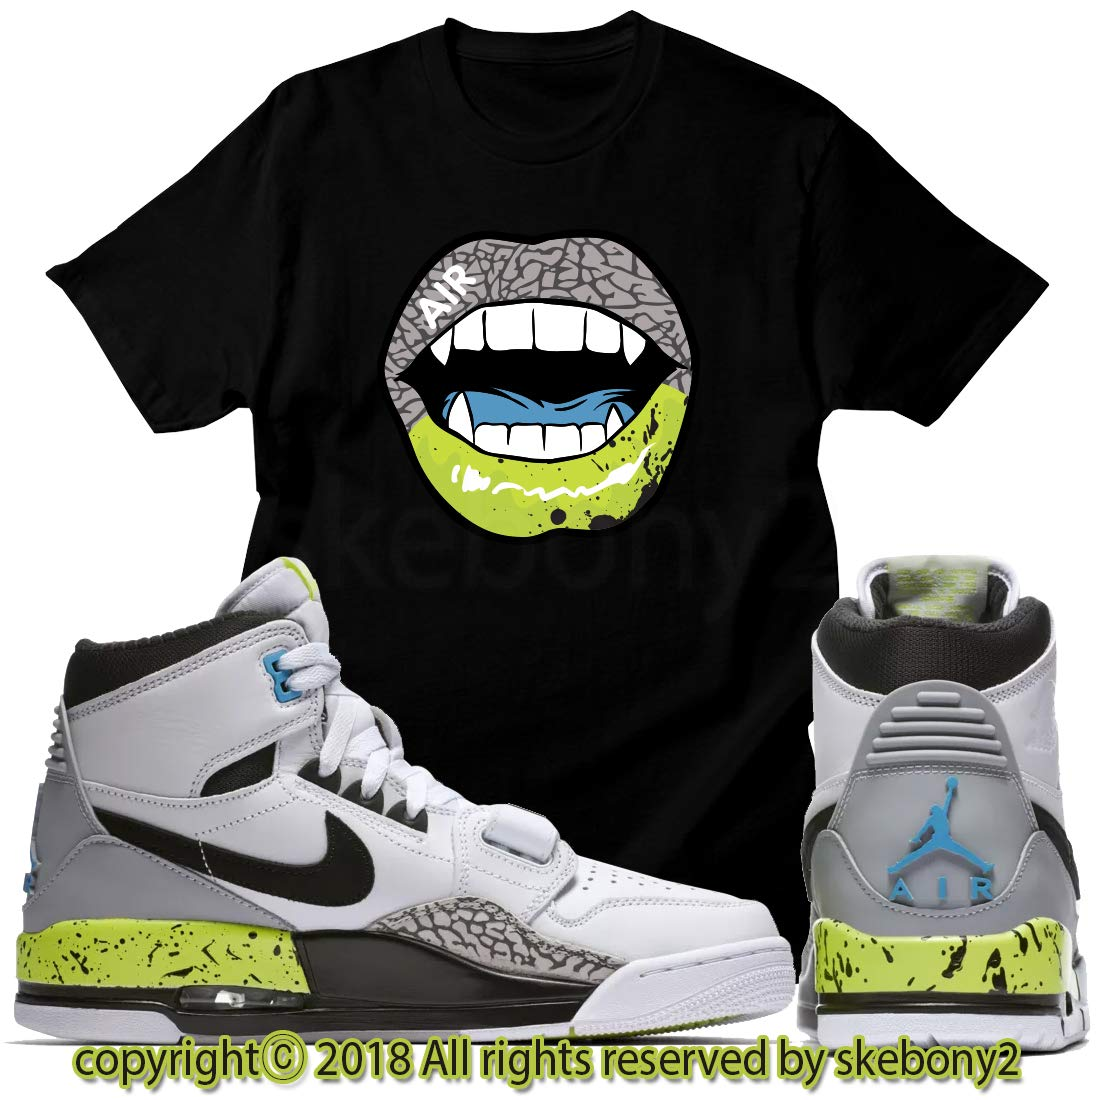 4695cef225bae Amazon.com: Custom T Shirt Matching AIR Jordan Legacy 312 White/Volt ...